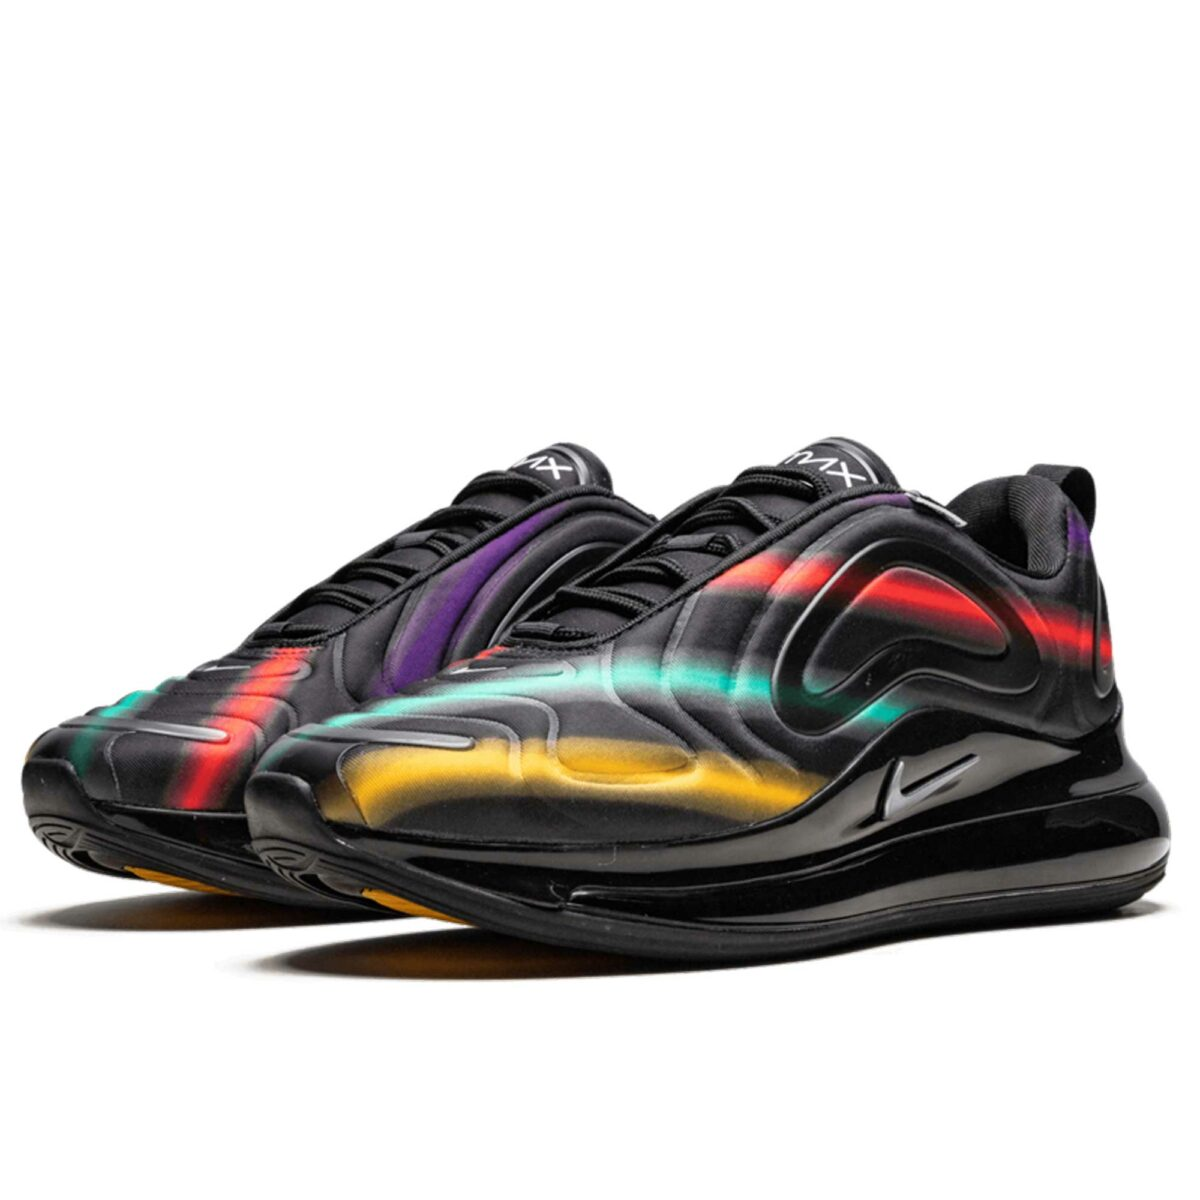 nike air max 720 black metallic silver AO2924_023 купить